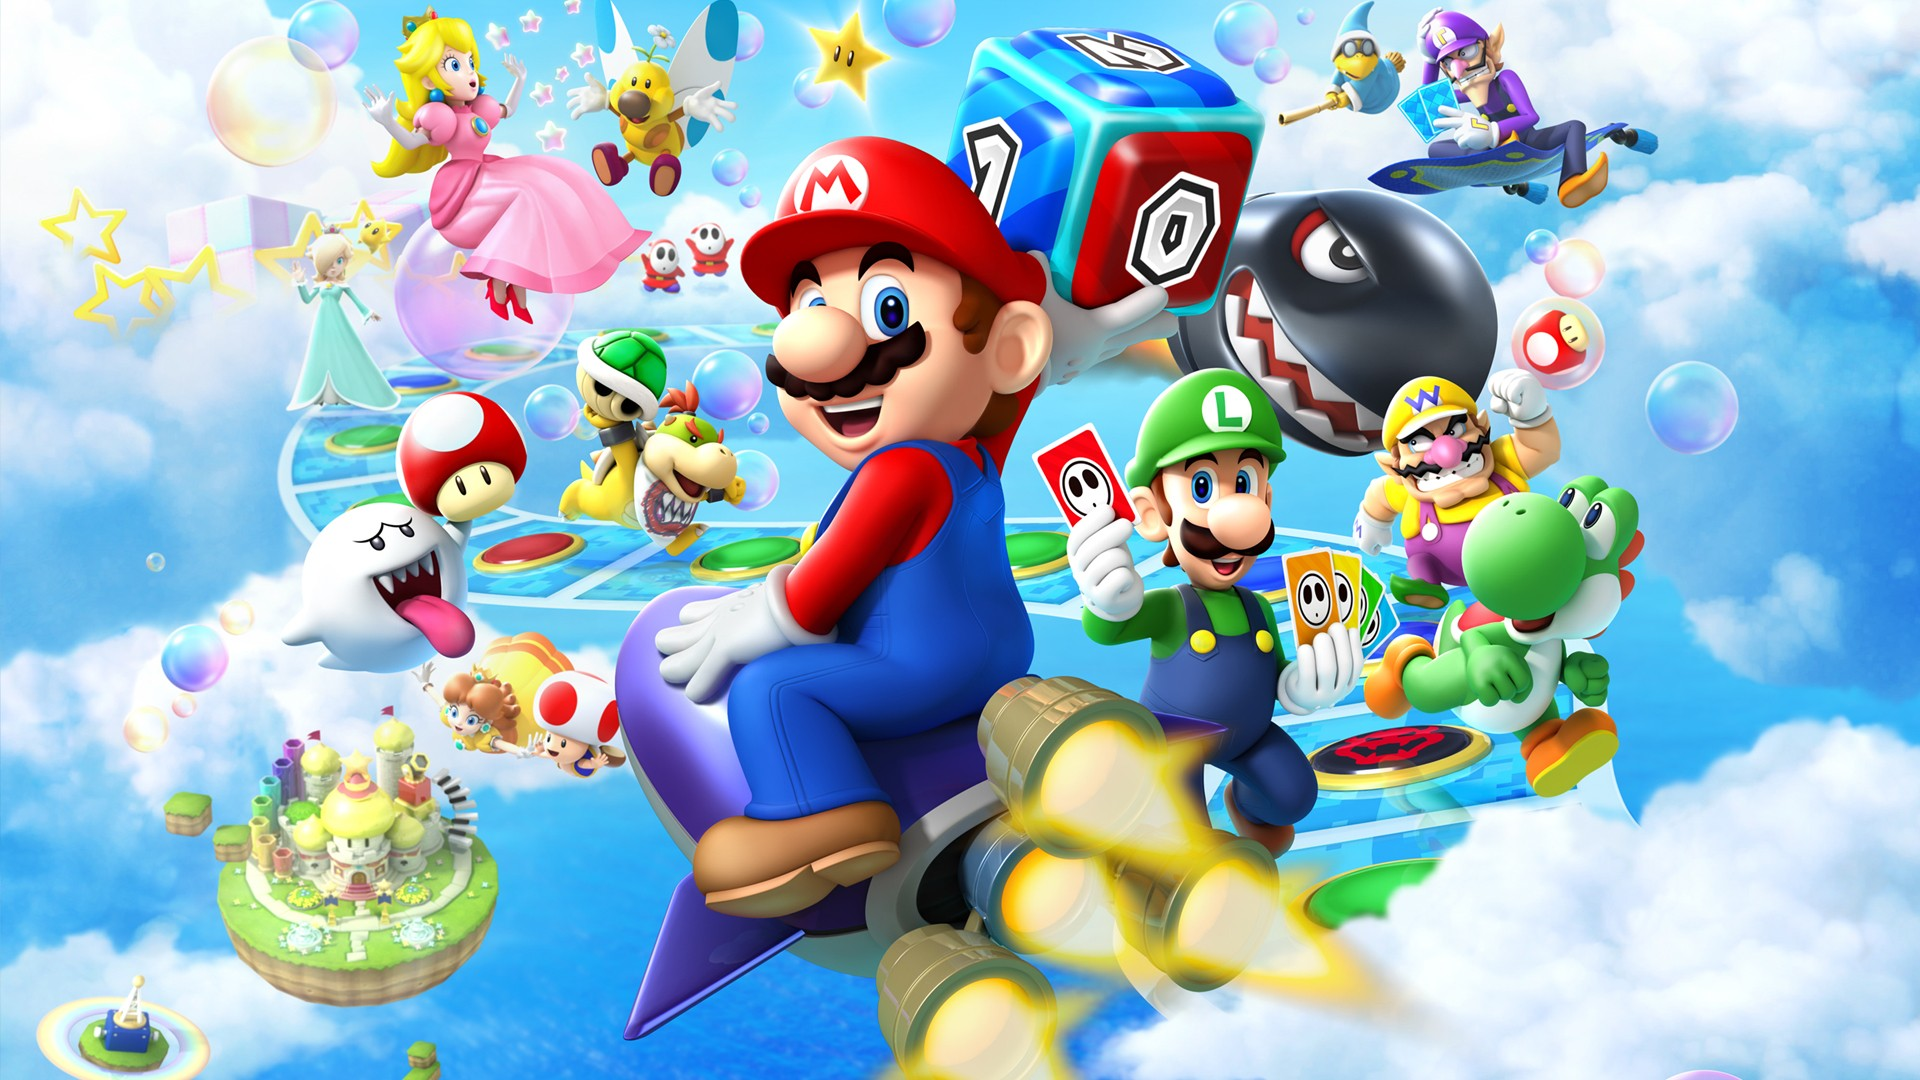 Papel Parede Mario ~ Mario Party Island Tour Wallpaper Full HD Papel de Parede and Planos de Fundo 1920×1080 ID